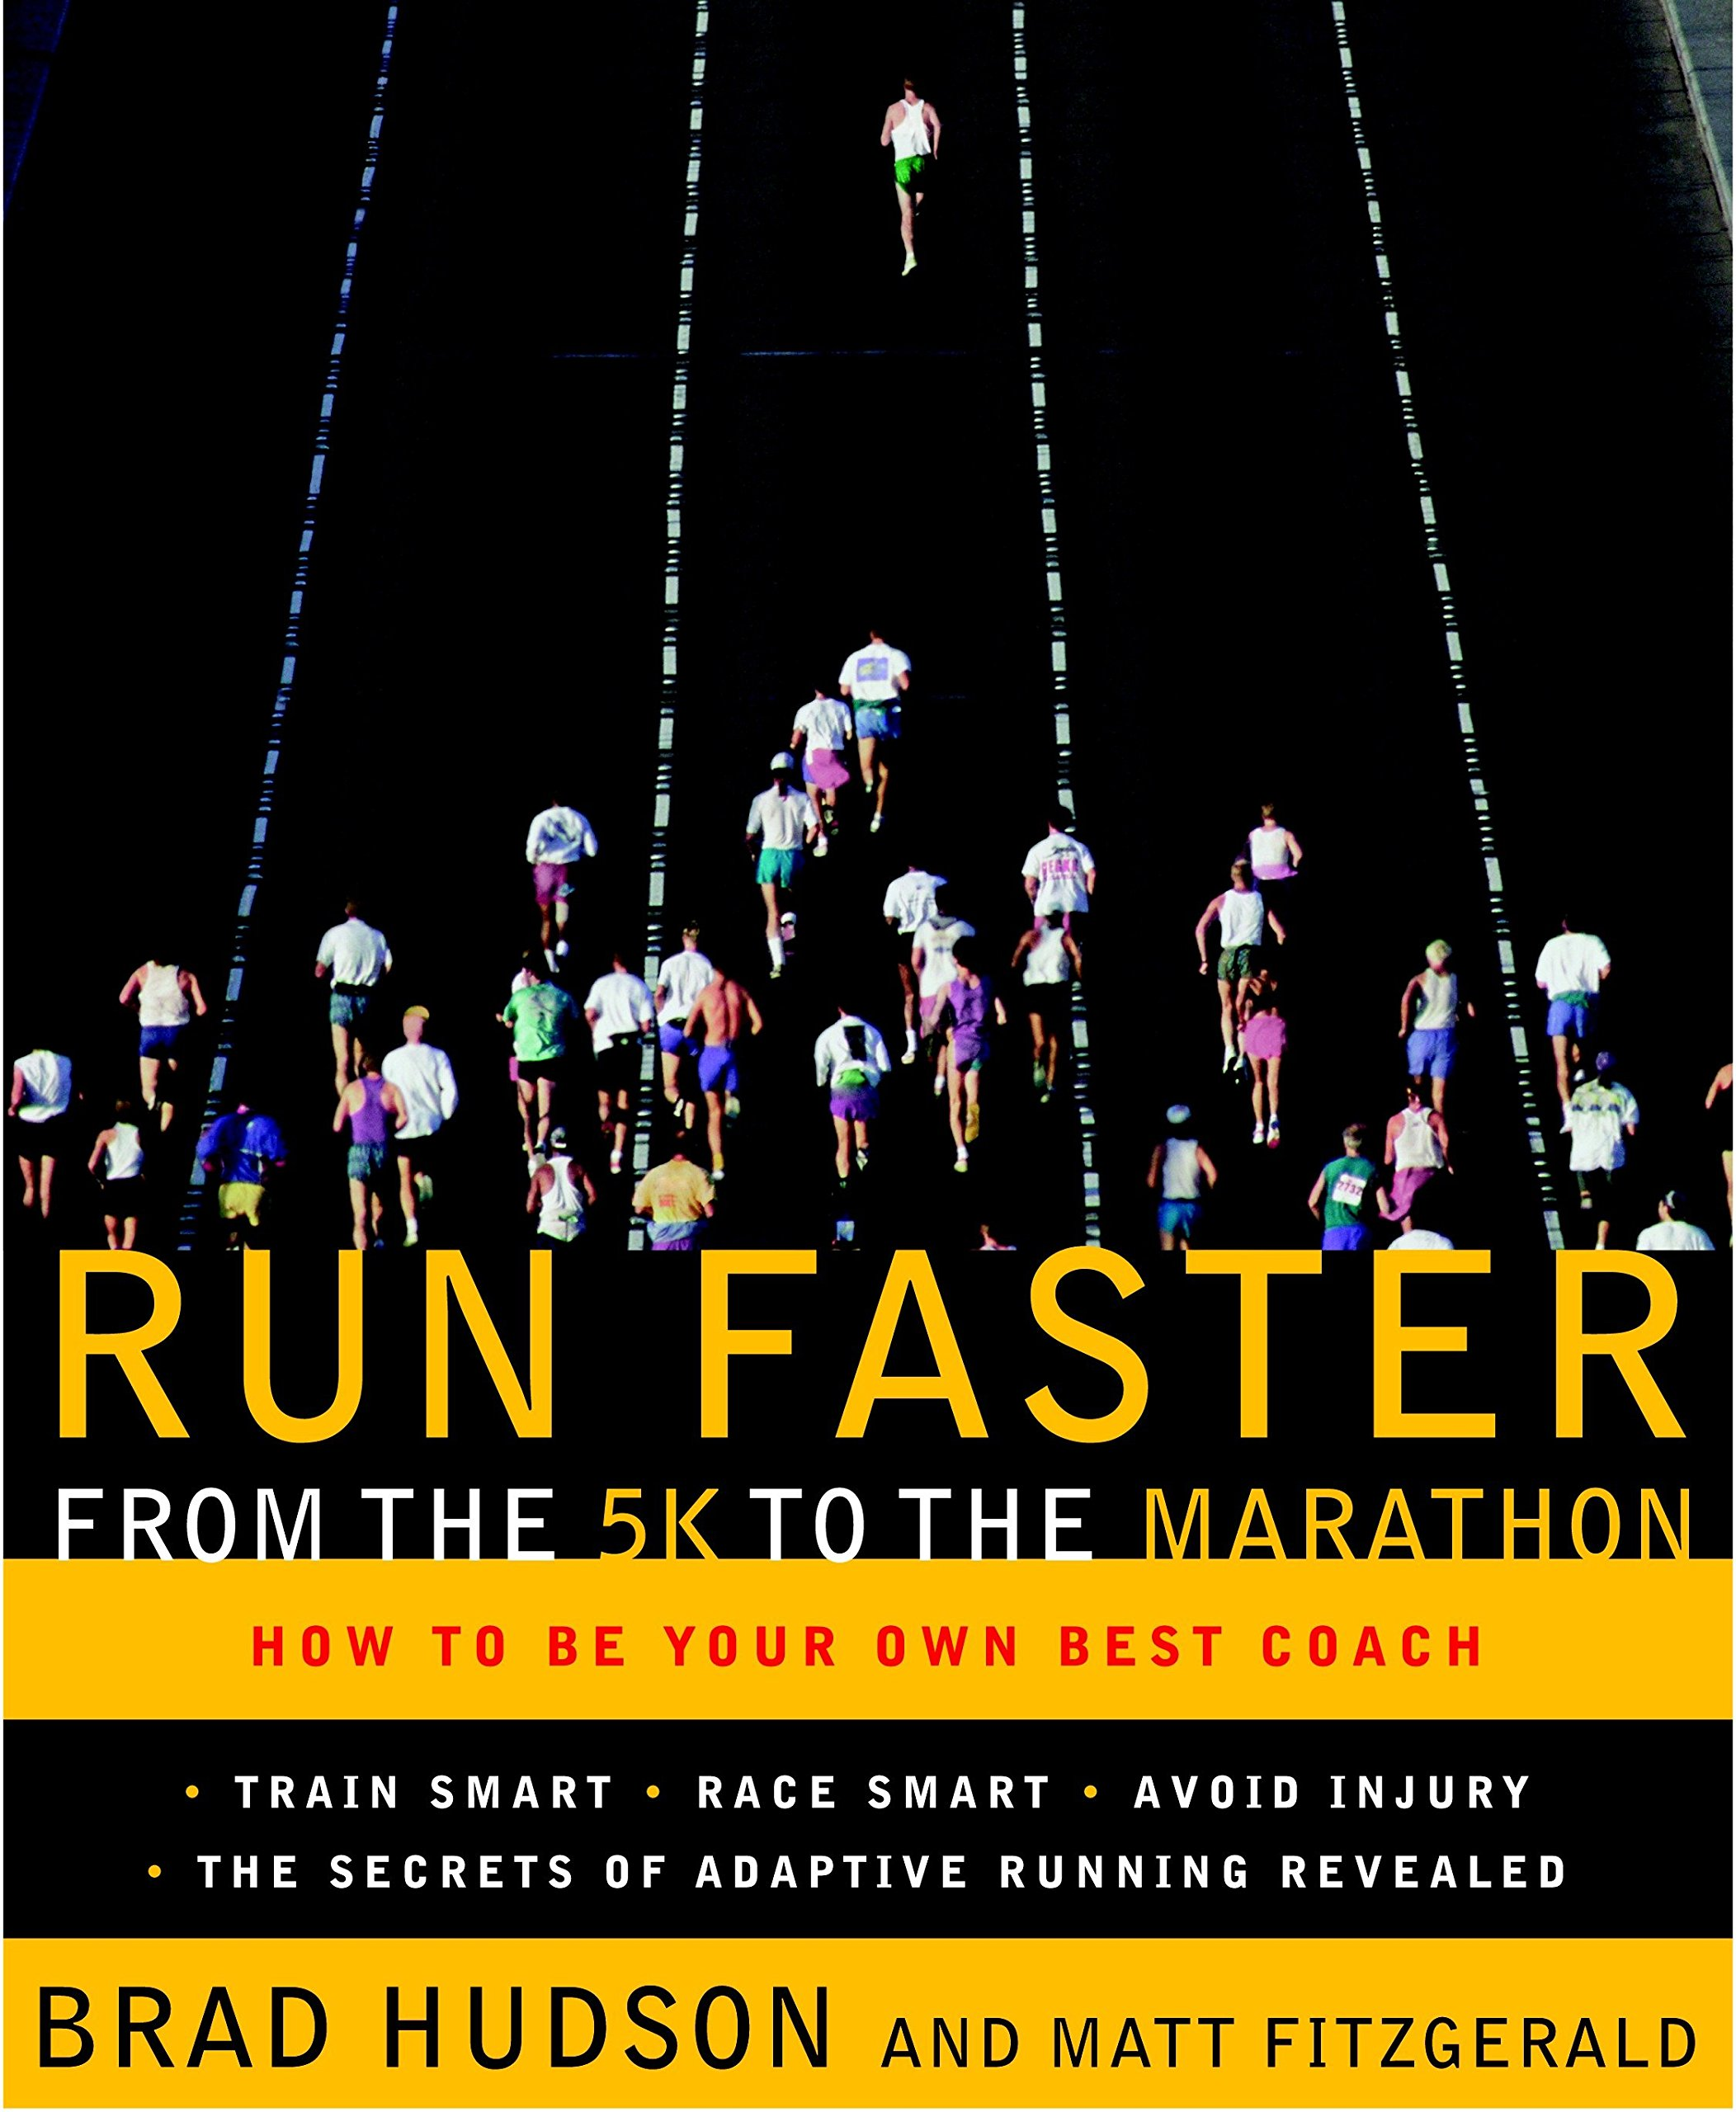 Image OfRun Faster From The 5K To The Marathon: How To Be Your Own Best Coach